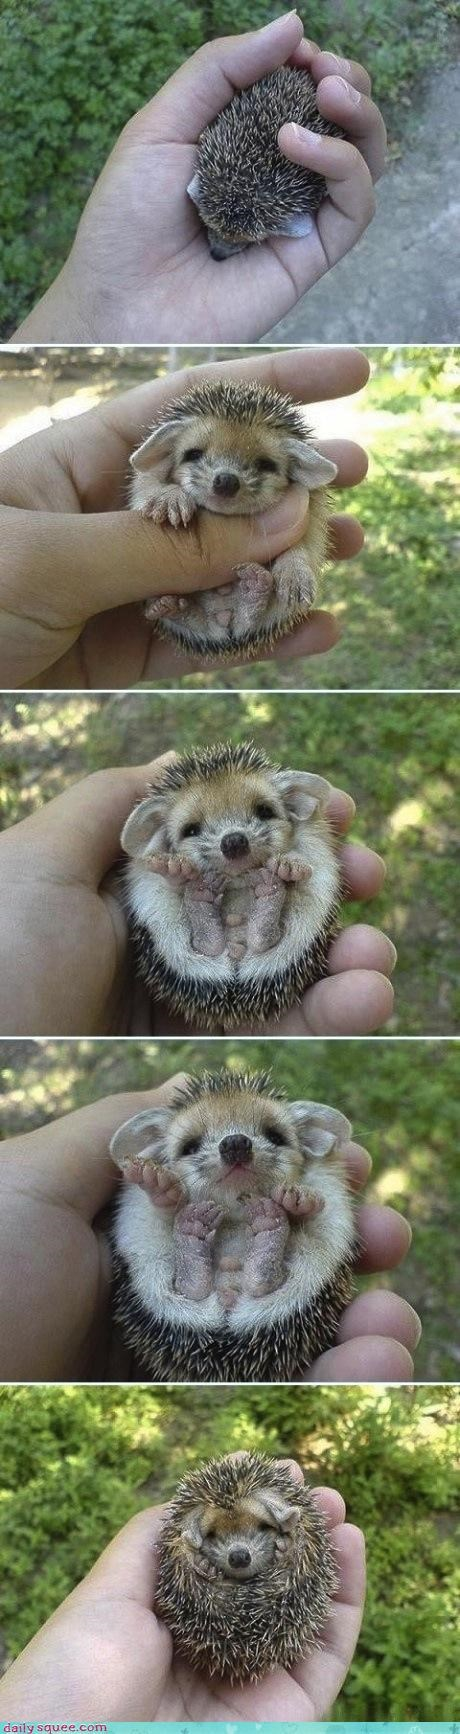 curling up,cute,frame-by-frame,hedgehog,slow motion,sonic,sonic the hedgehog,spin dash,technology